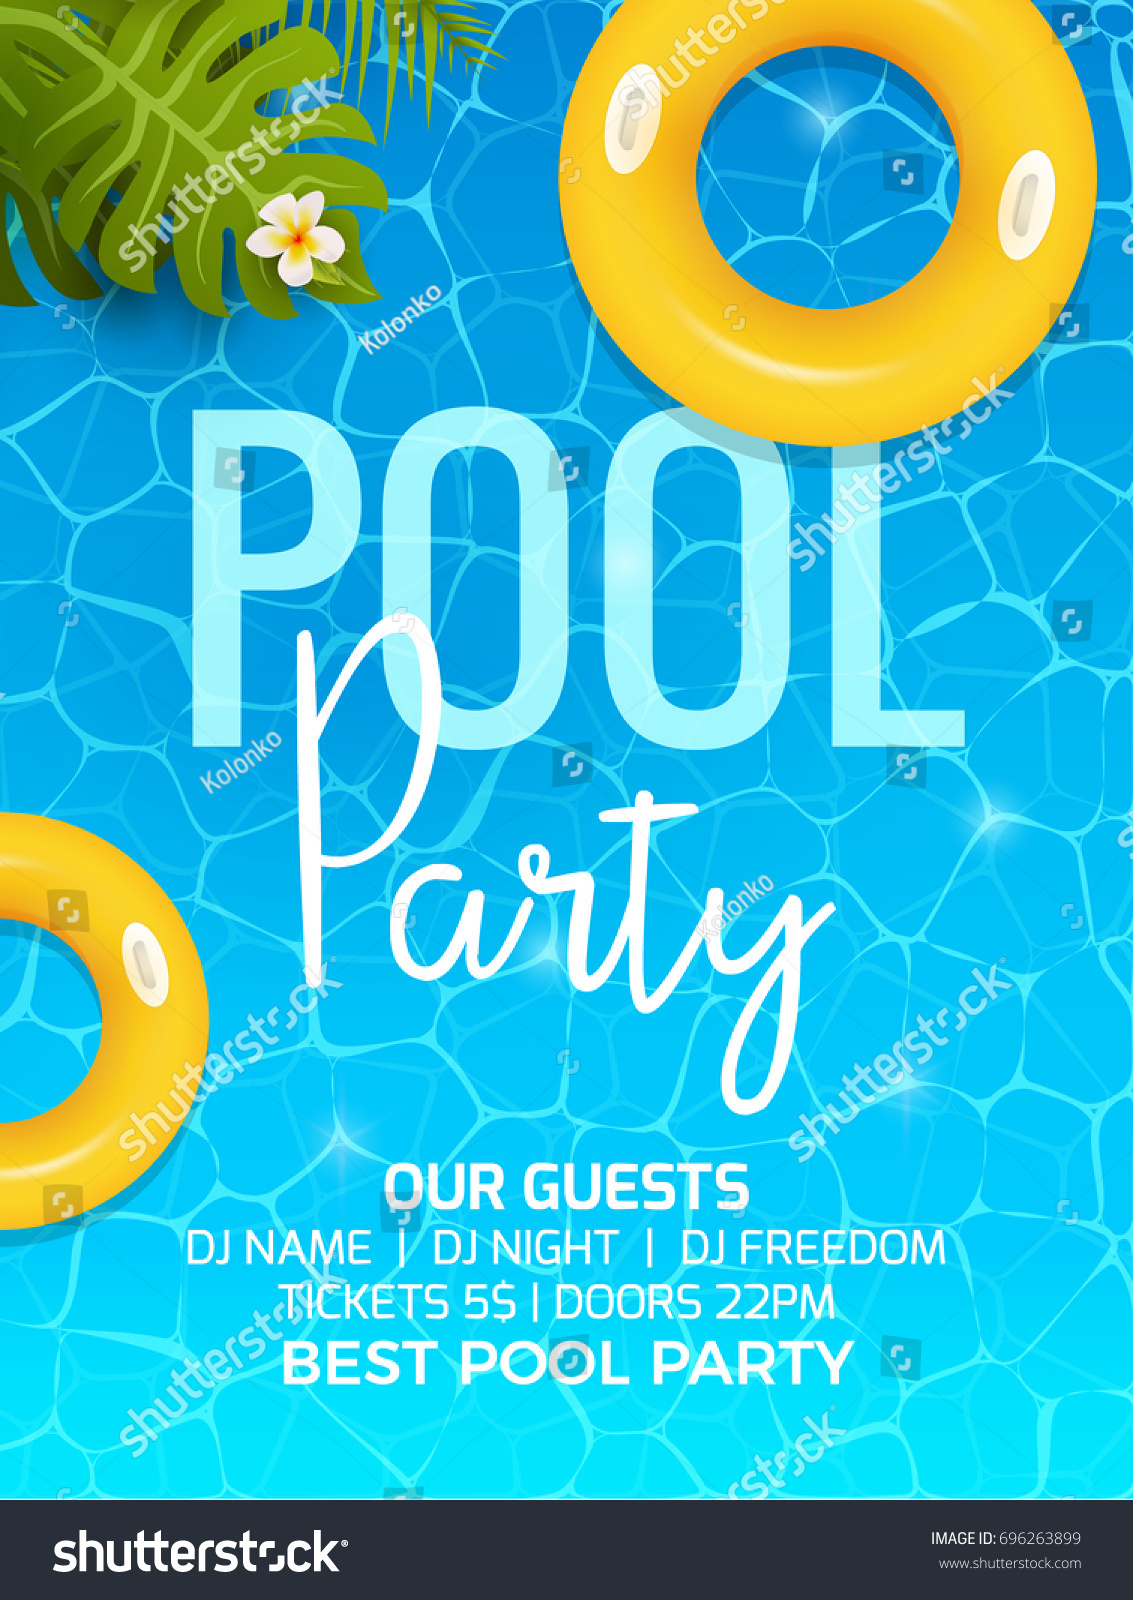 Pool summer party invitation template invitation em vetor stock pool summer party invitation template invitation pool party invitation with palm poster or flyer stopboris Gallery